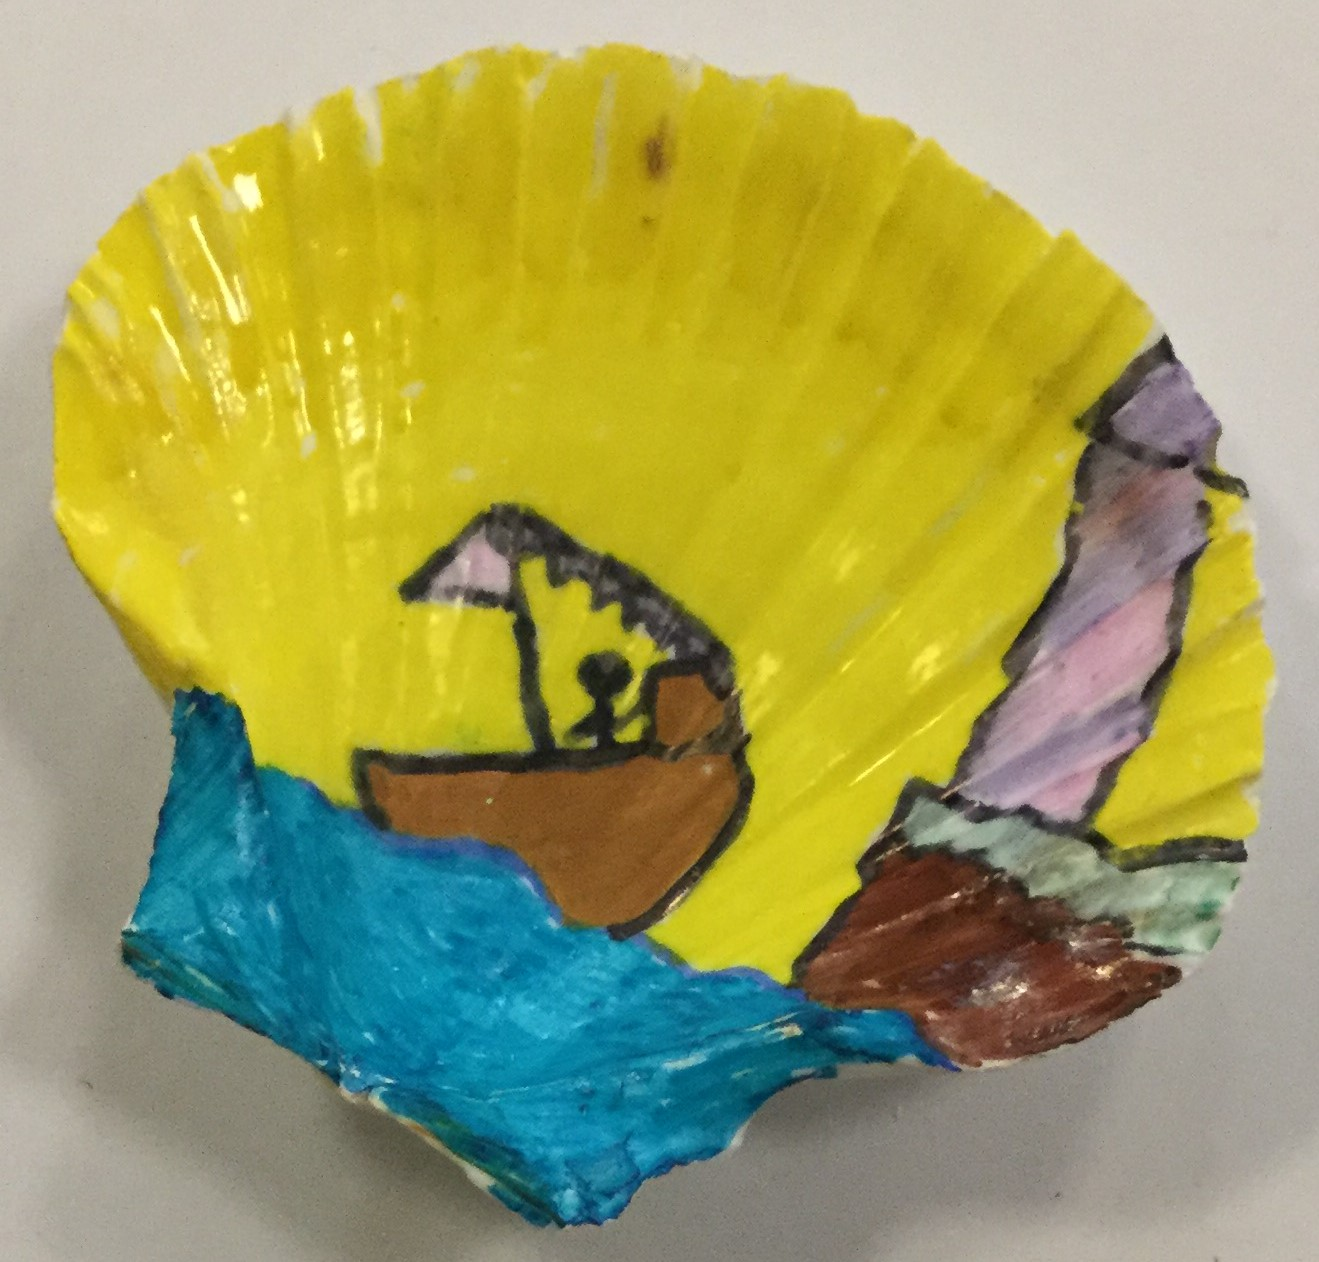 The inside of the scallop shell has been decorated with a brilliant yellow sky and turquoise sea. A boat, complete with pink sail and small figure is entering the harbour mouth, with a lighthouse perched on the wall to the right